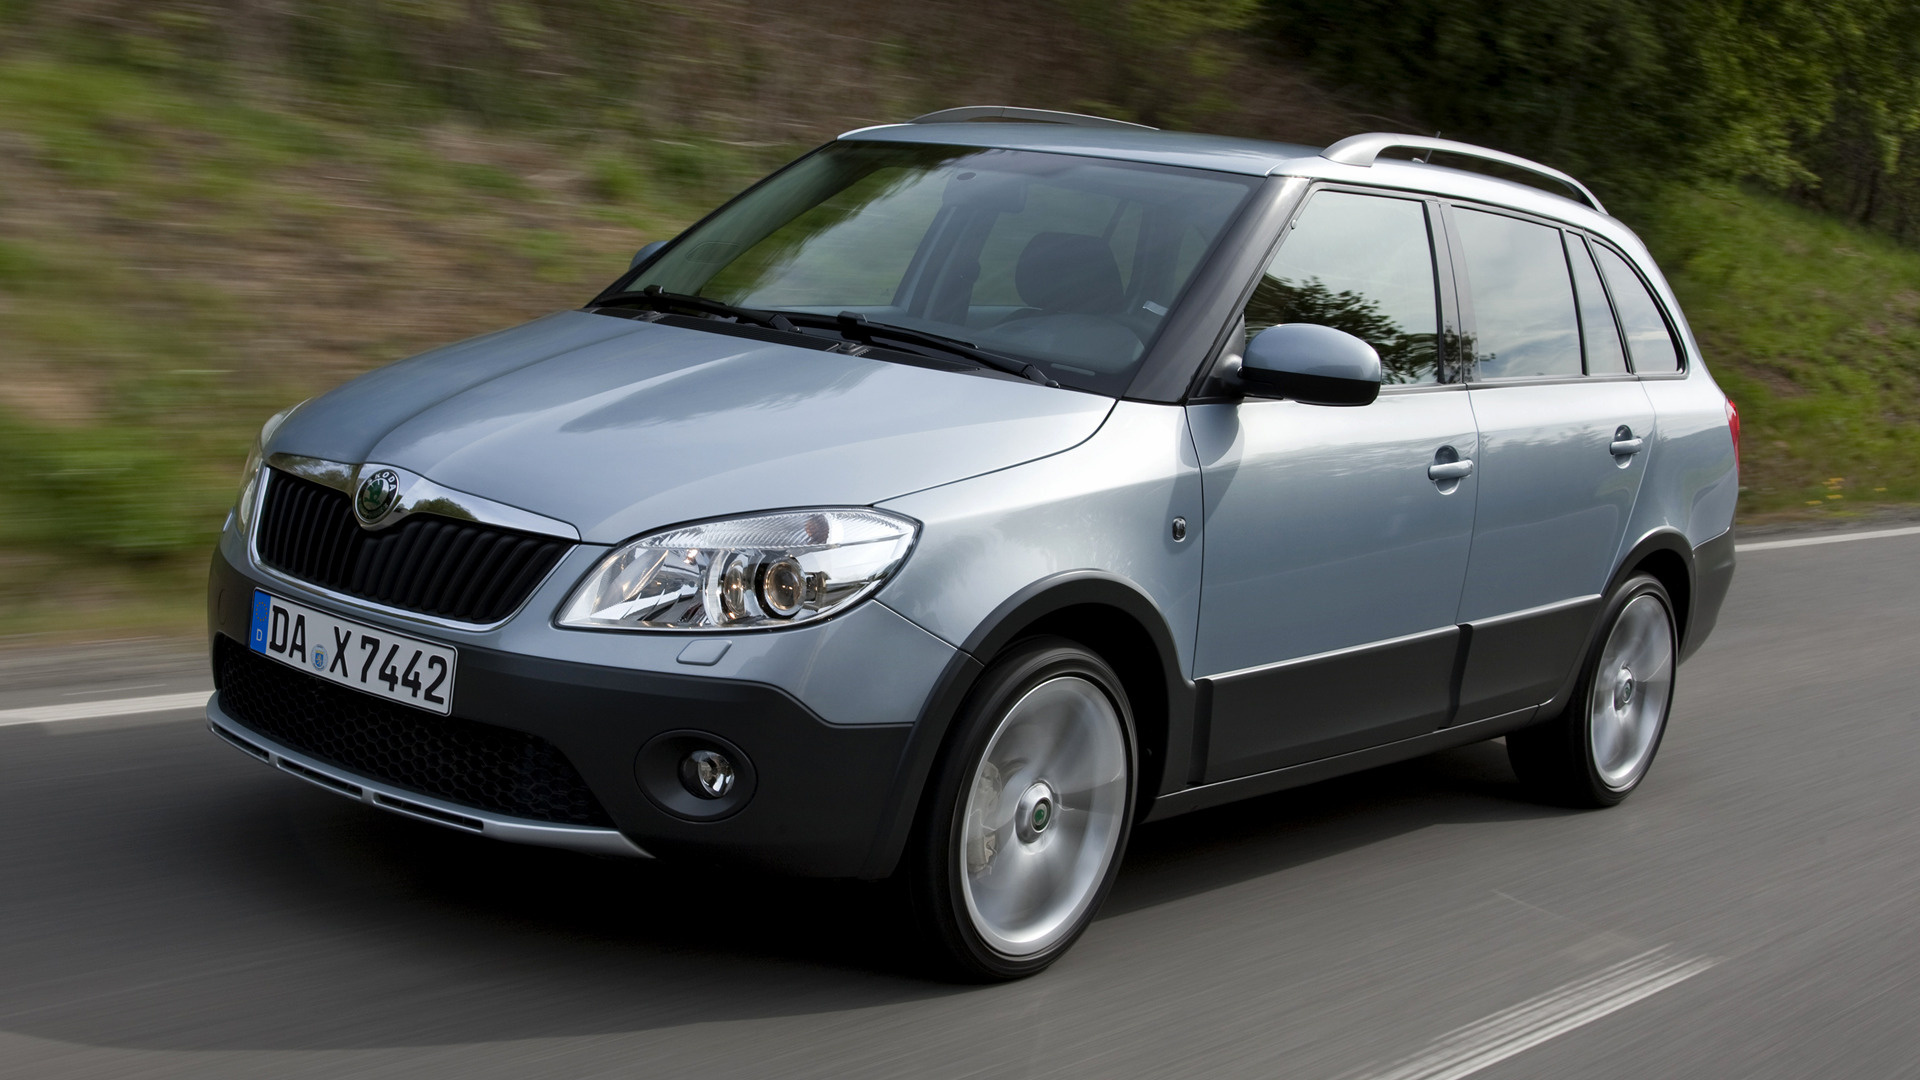 skoda fabia scout combi 2010 wallpapers and hd images. Black Bedroom Furniture Sets. Home Design Ideas